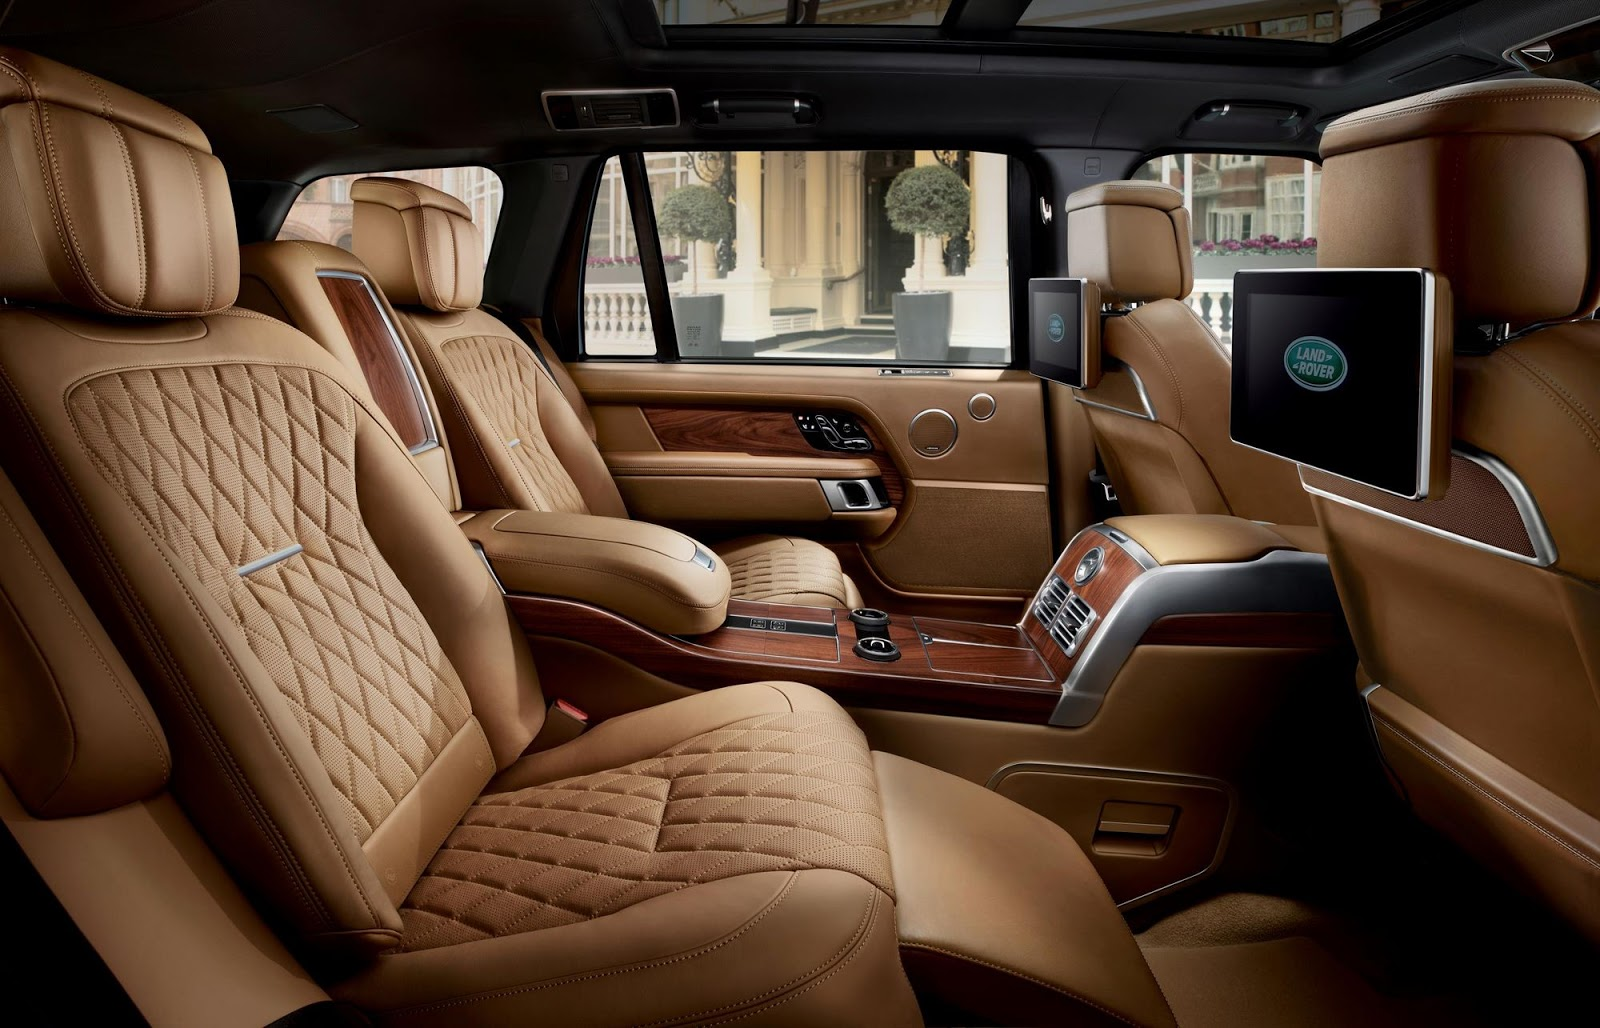 2018 Range Rover Svautobiography Is A First Class Luxury